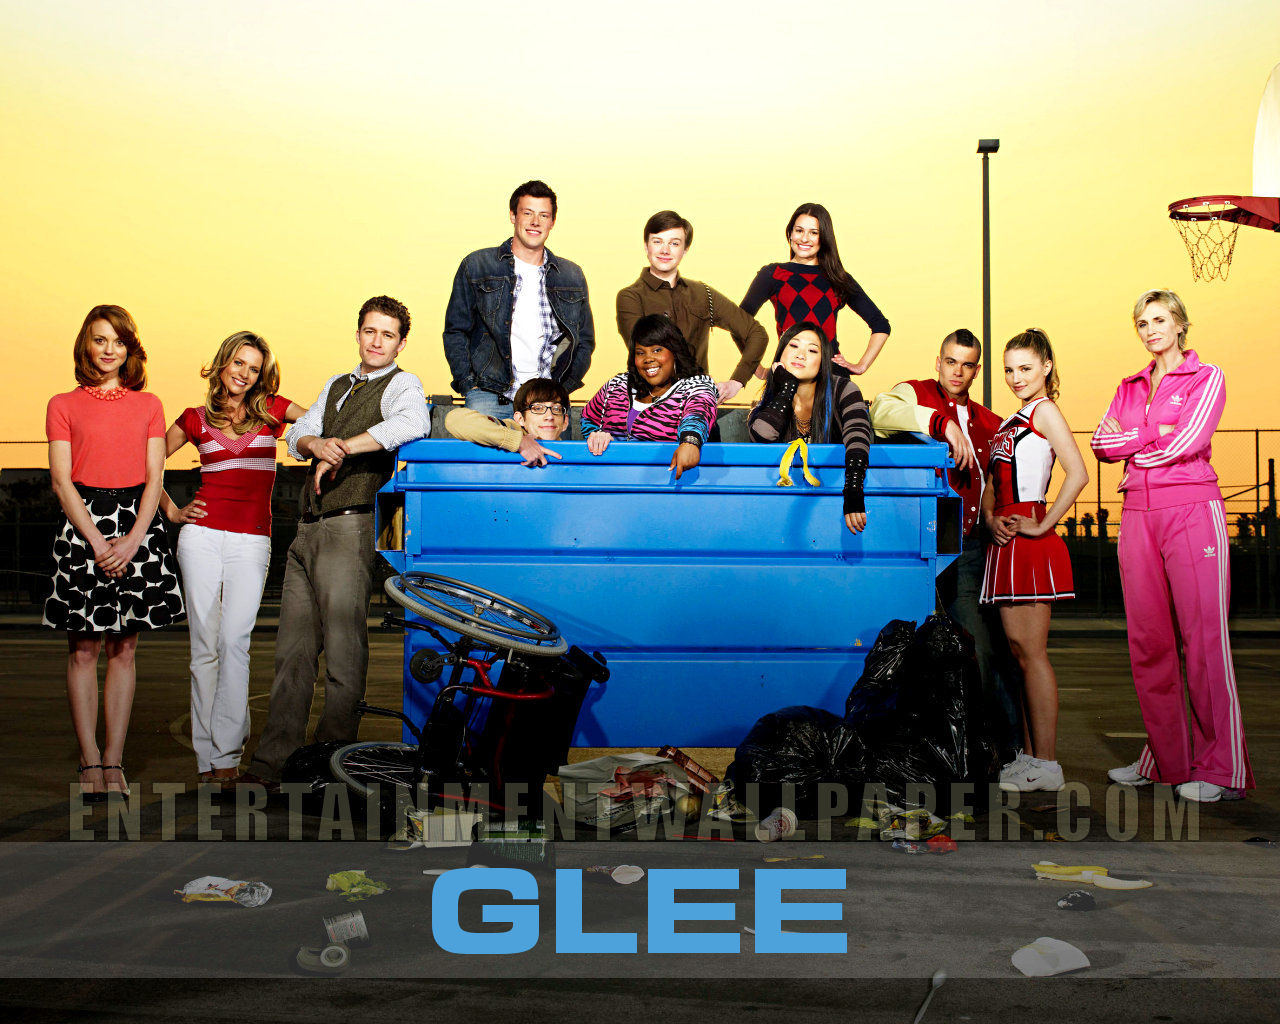 http://images2.wikia.nocookie.net/__cb20101022071918/glee/images/3/37/Tv_glee02.jpg